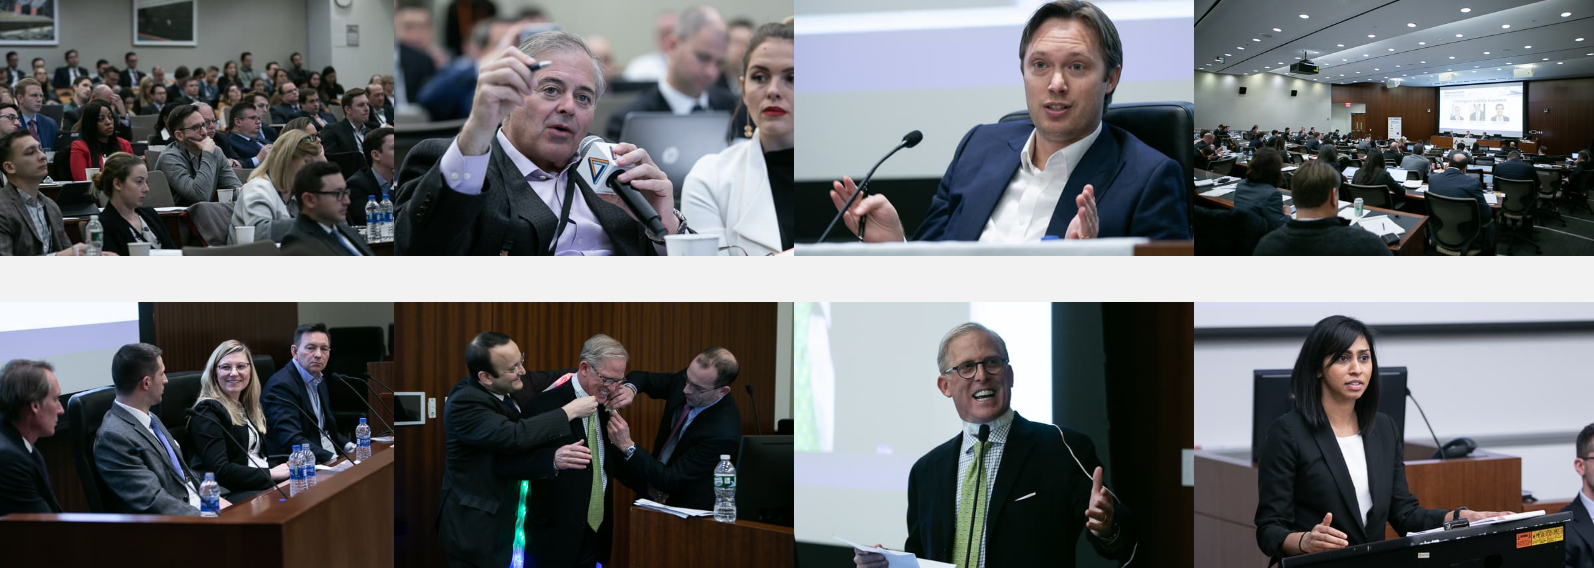 Transaction Insurance Insights Conference 2021